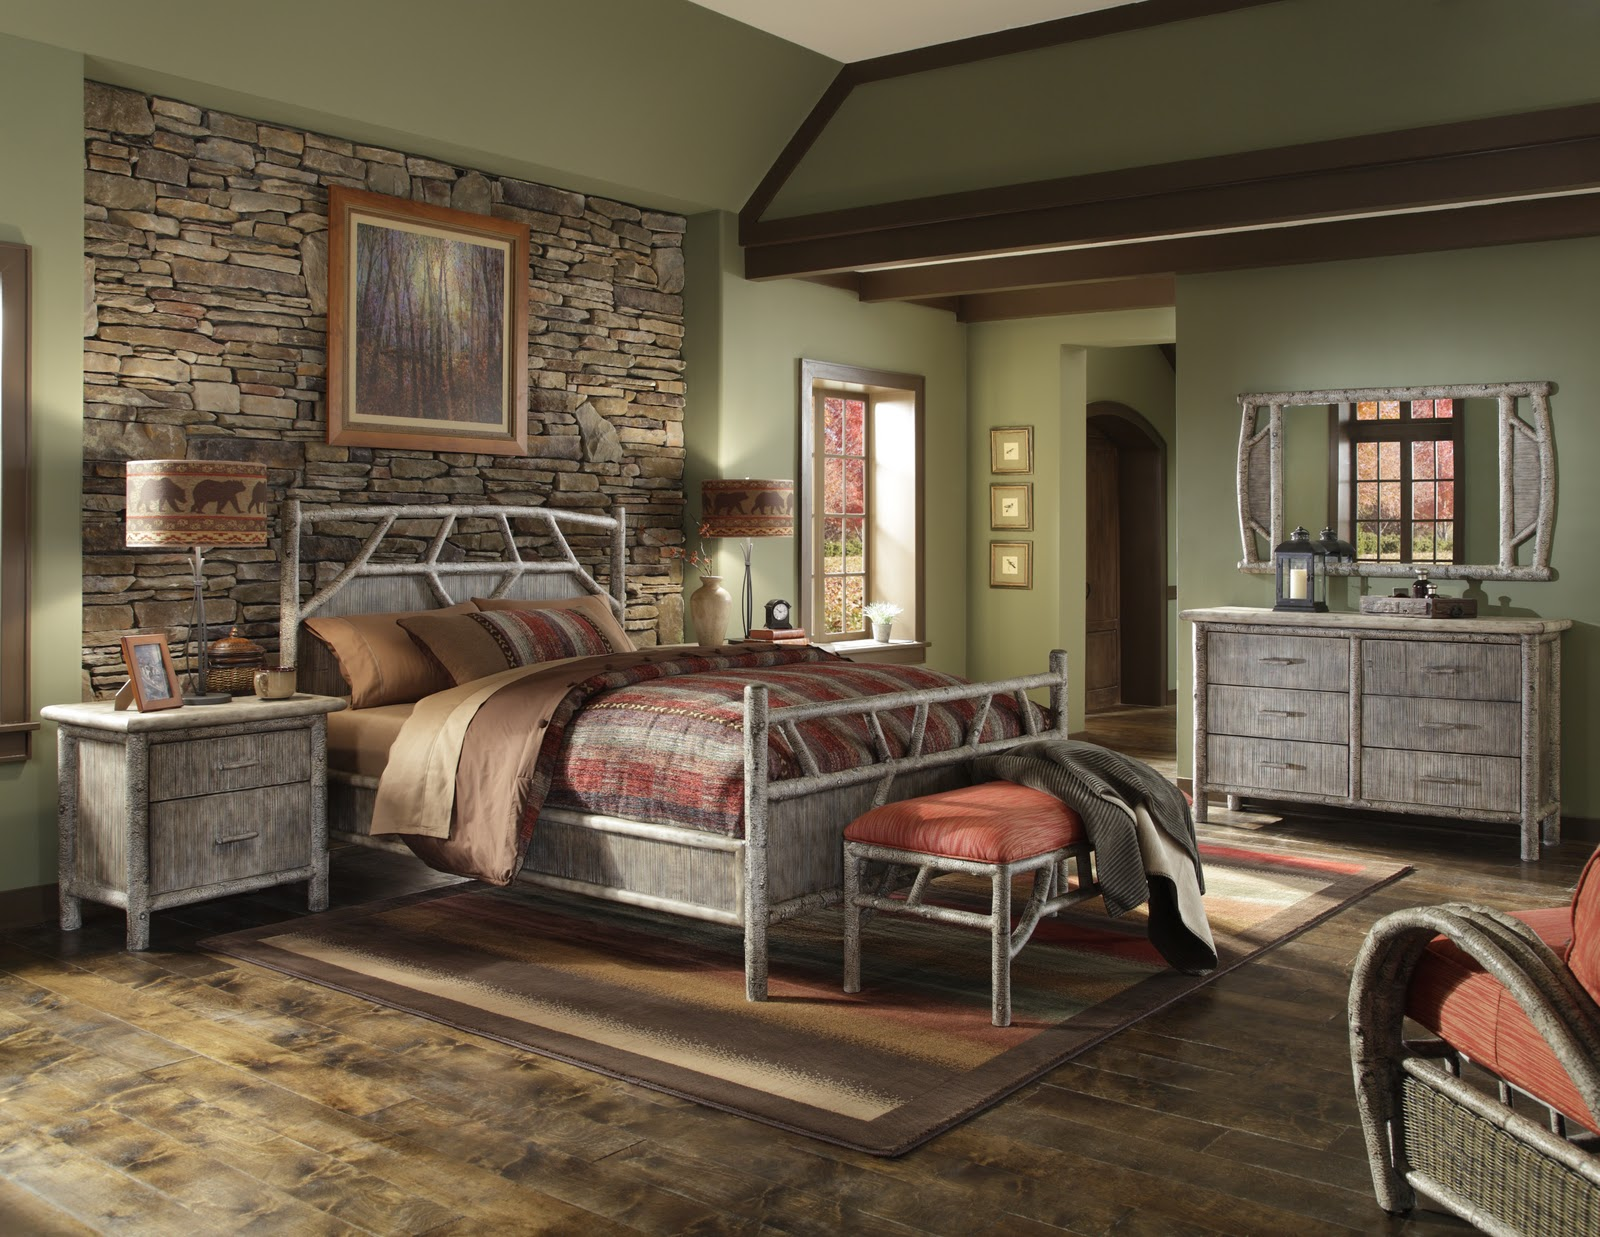 Cabin Theme Rooms http://giftandhometoday.blogspot.com/2011/01/5-new-bedding-ensembles.html